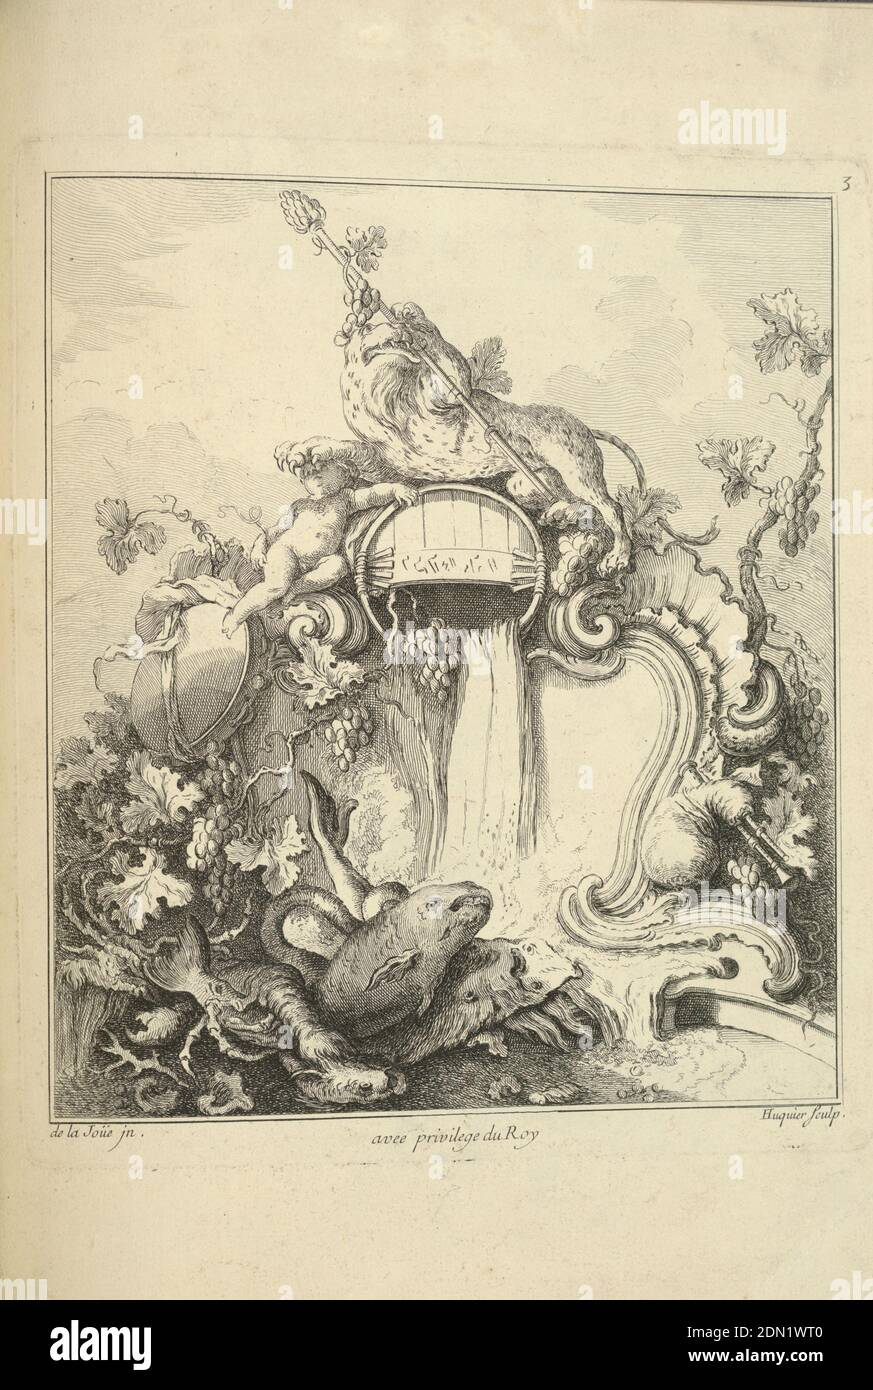 Design for a Cartouche Surmounted by a Tiger, Jacques de Lajoüe, French, 1687–1761, Gabriel Huquier, French, 1695–1772, Engraving on white laid paper, A tiger holding a thyrsus atop a barrel that is probably pouring wine, his paw resting on the head of a putto. Clusters of grapes and leaves decorate the cartouche. Enormous fish are at bottom foreground., France, 1740, ornament, Print Stock Photo